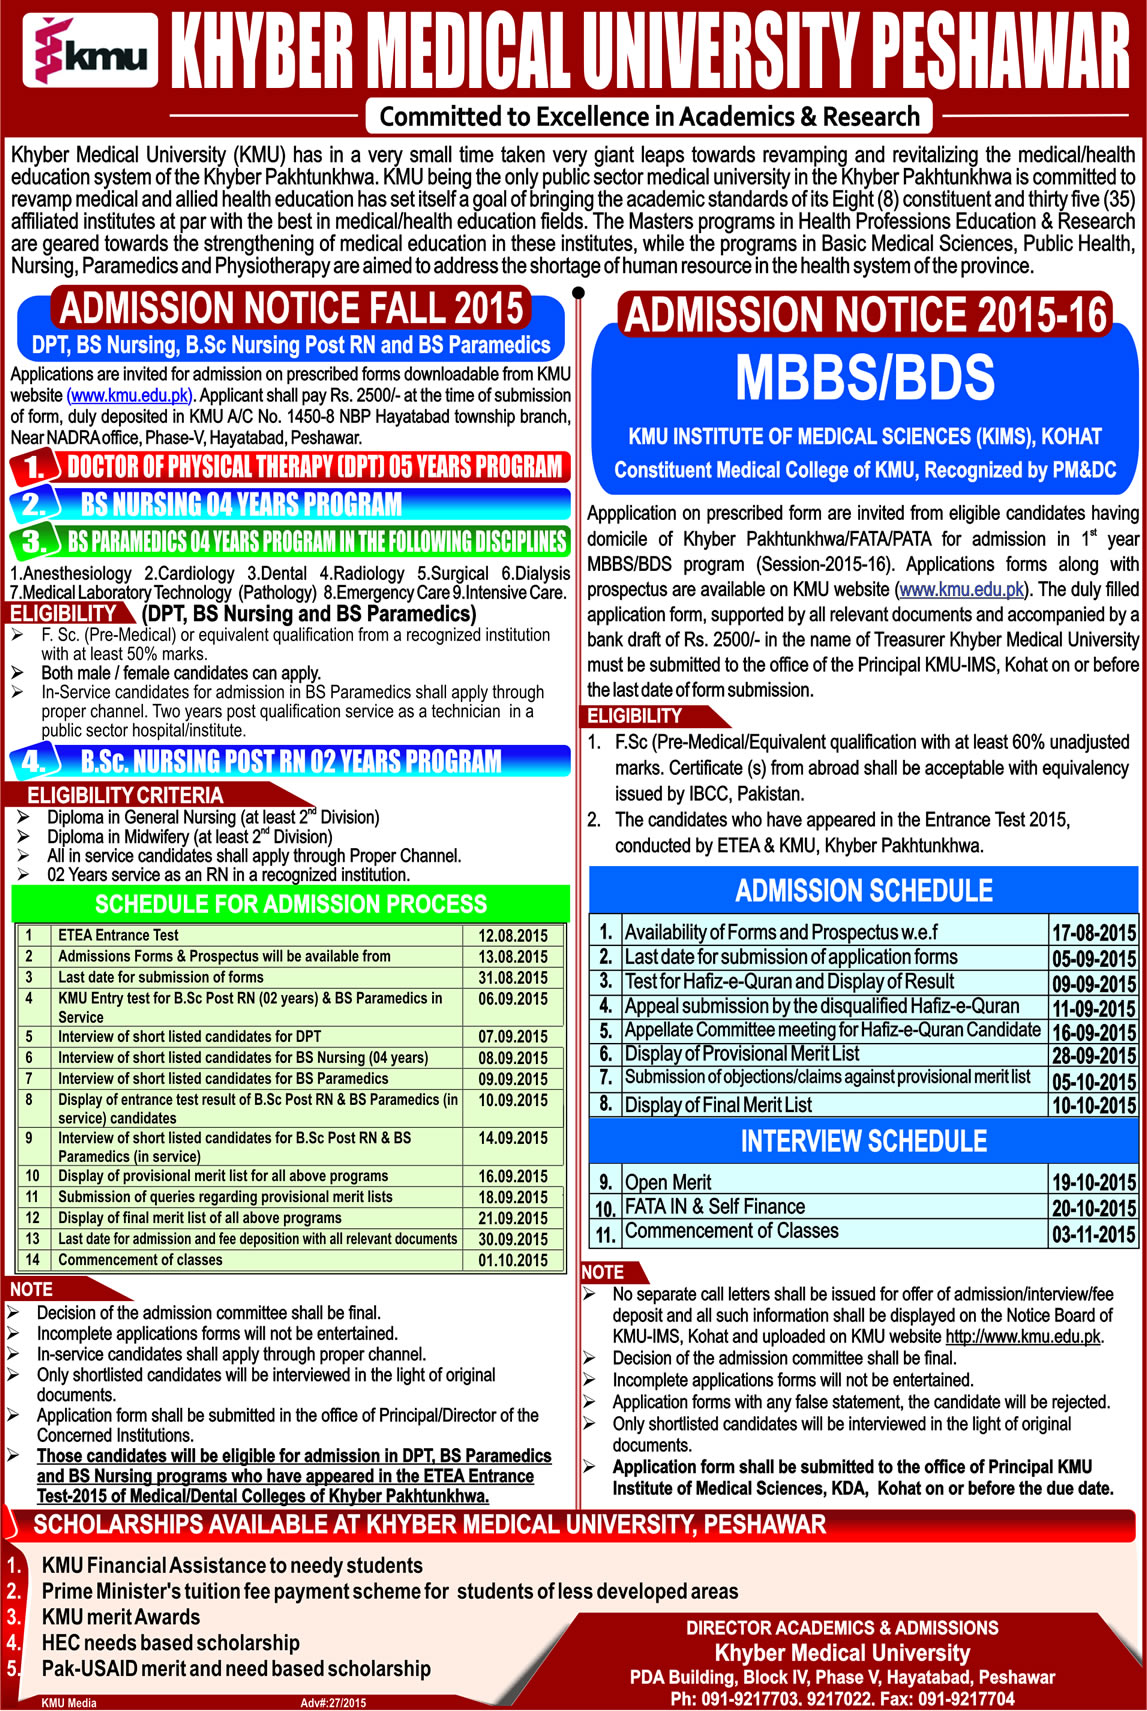 Admissions Open in BSc Nursing (Post RN) | Khyber Medical ... on gautam buddha university, kabul medical university, riphah international university, gandhara university, king edward medical university,